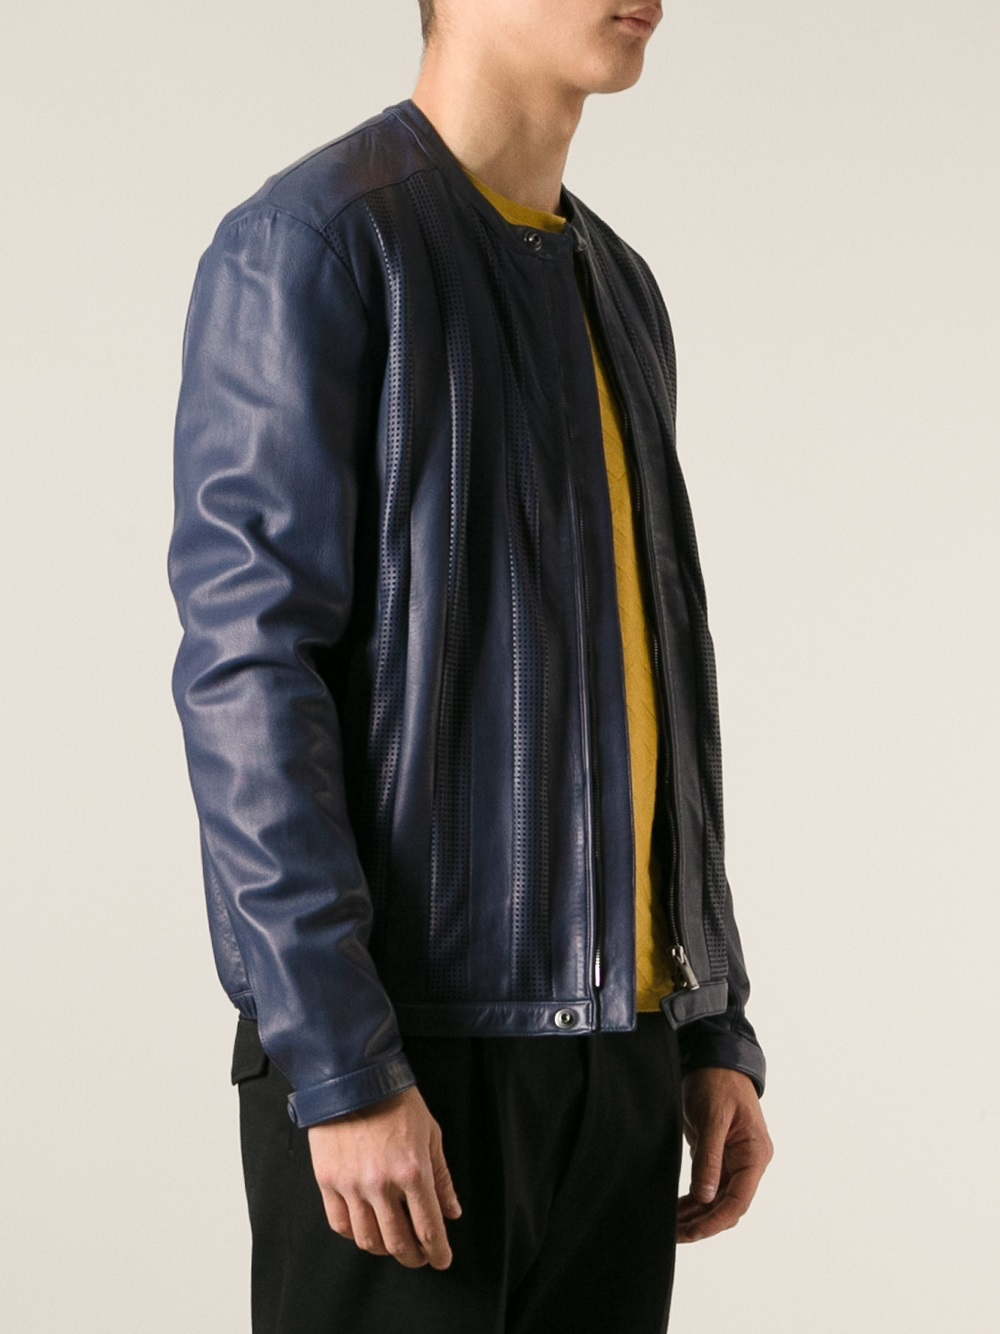 Fendi Perforated Leather Jacket in Blue for Men | Lyst